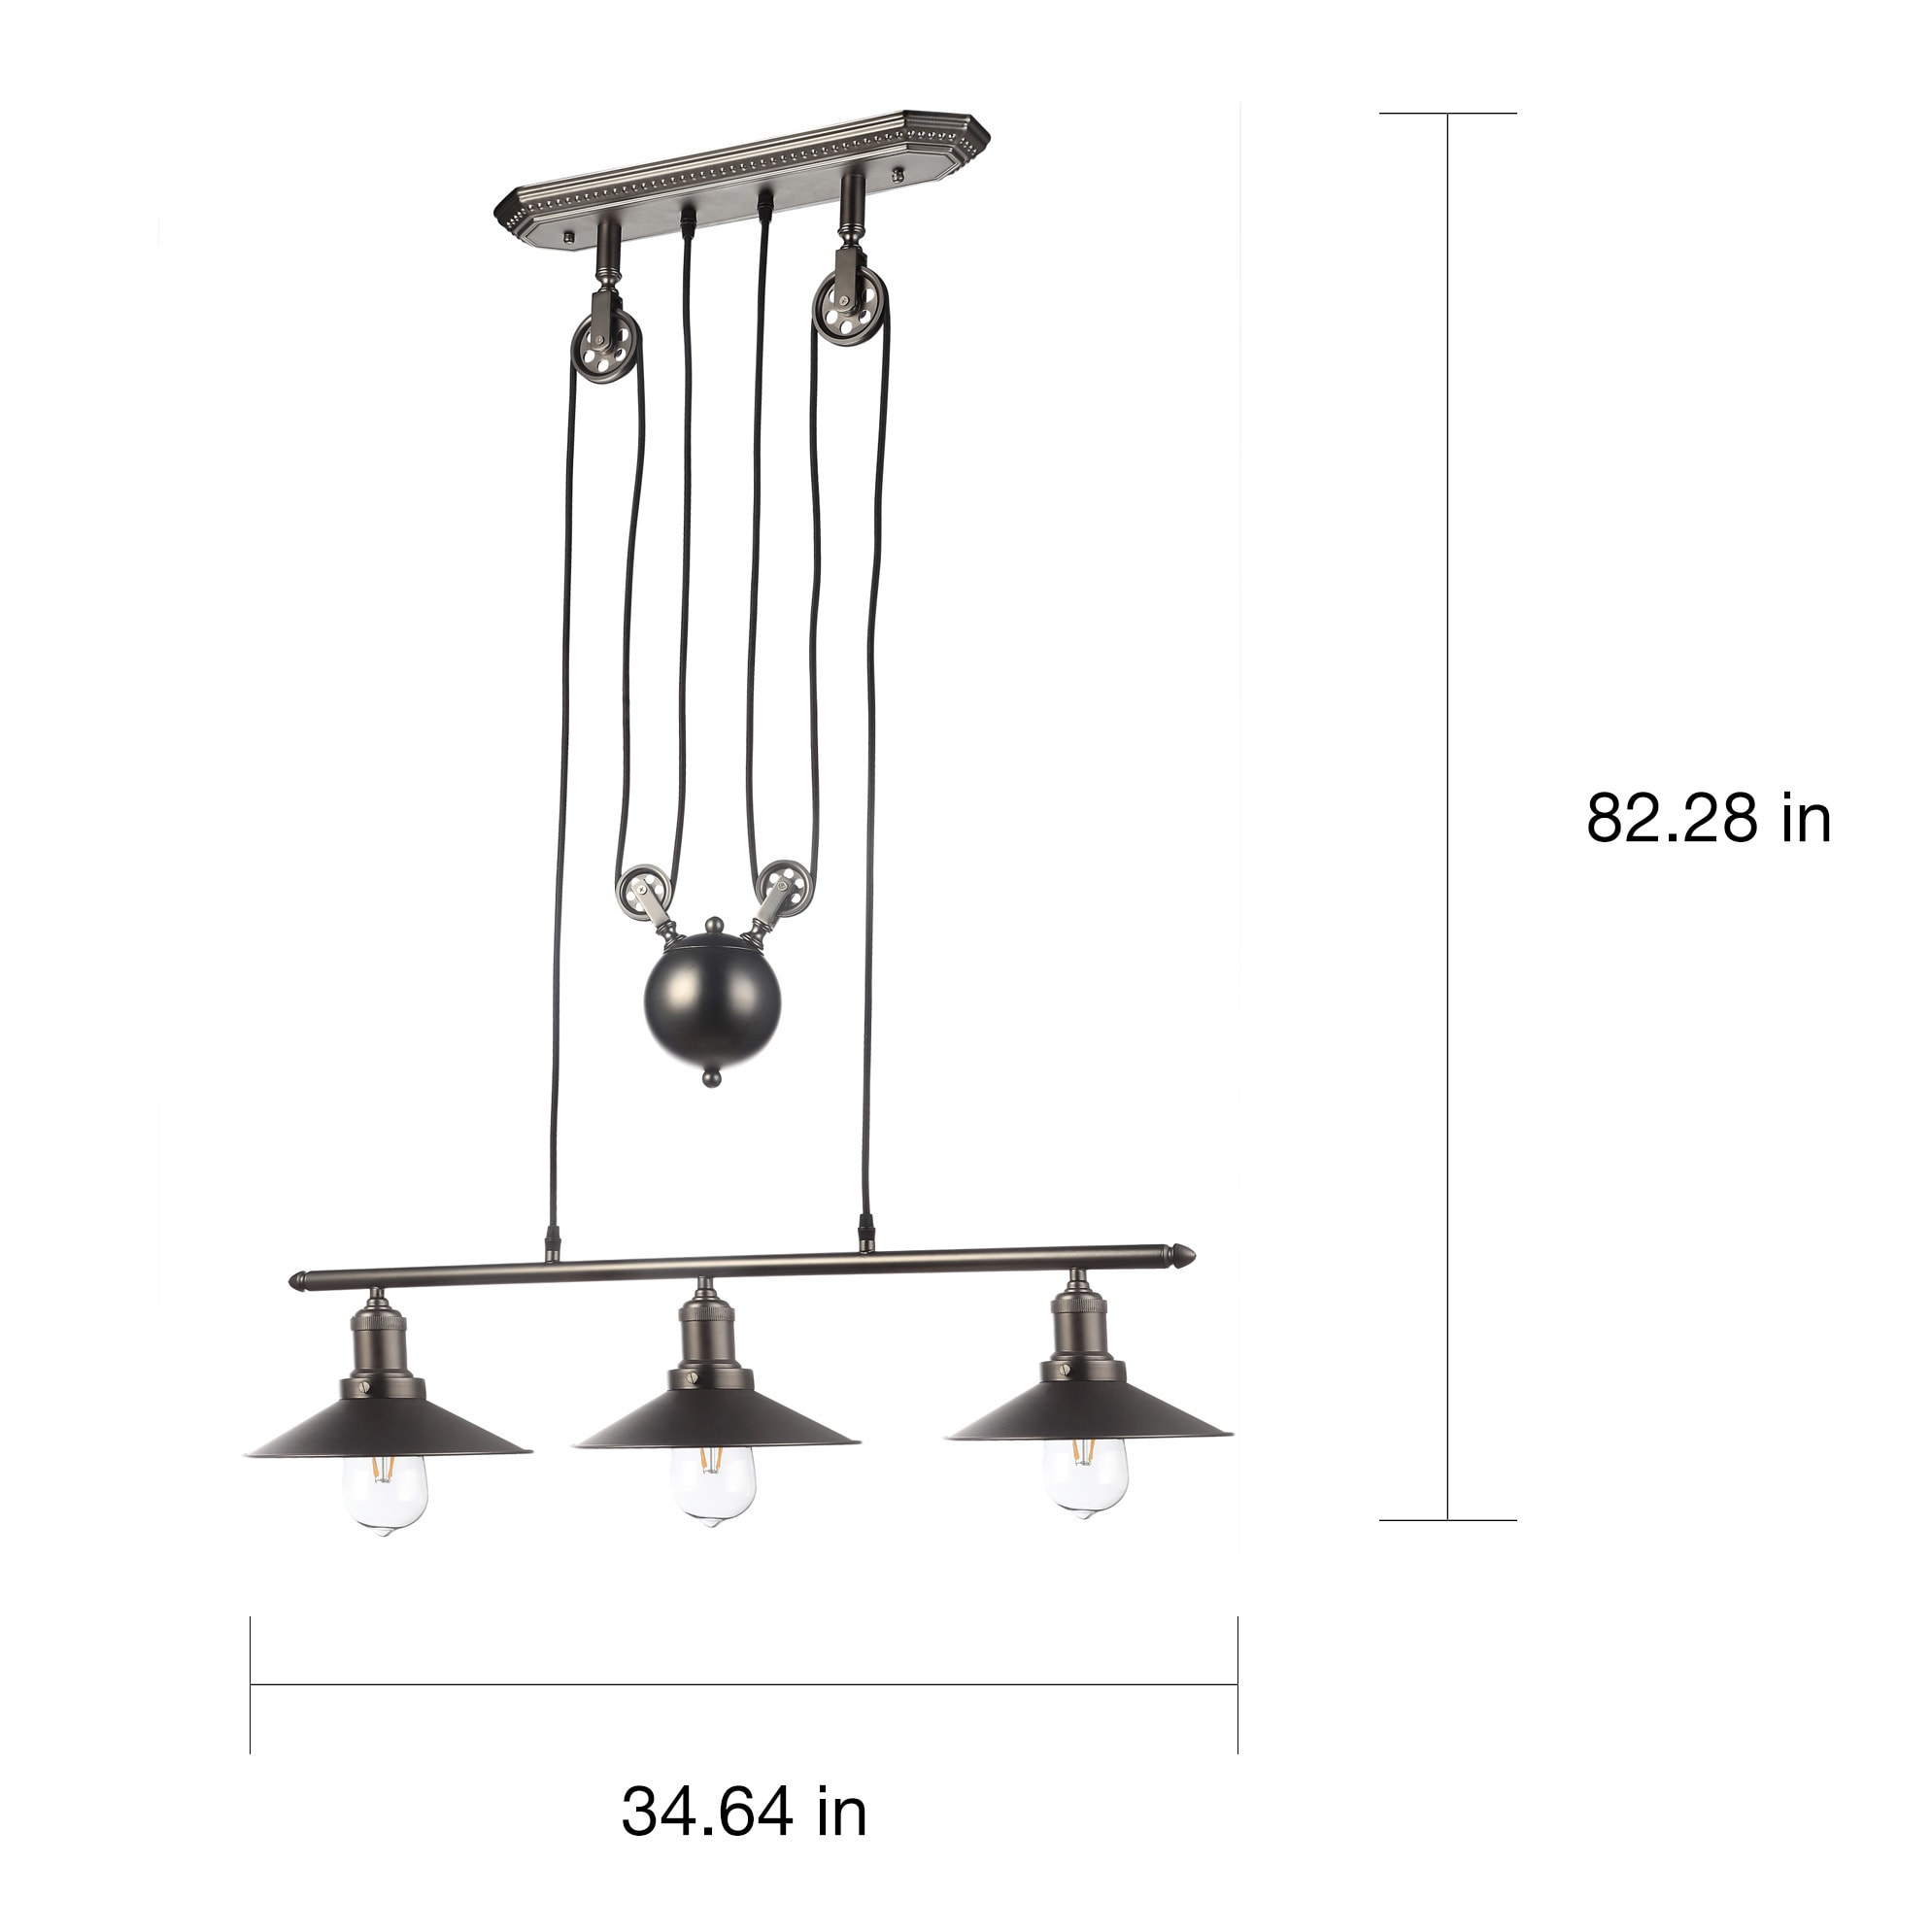 Shop Vonn Lighting Vvc31023bz Delphinus 35 Inch Linear Chandelier Parts Diagram With Led Filament Bulbs Free Shipping Today 11638144